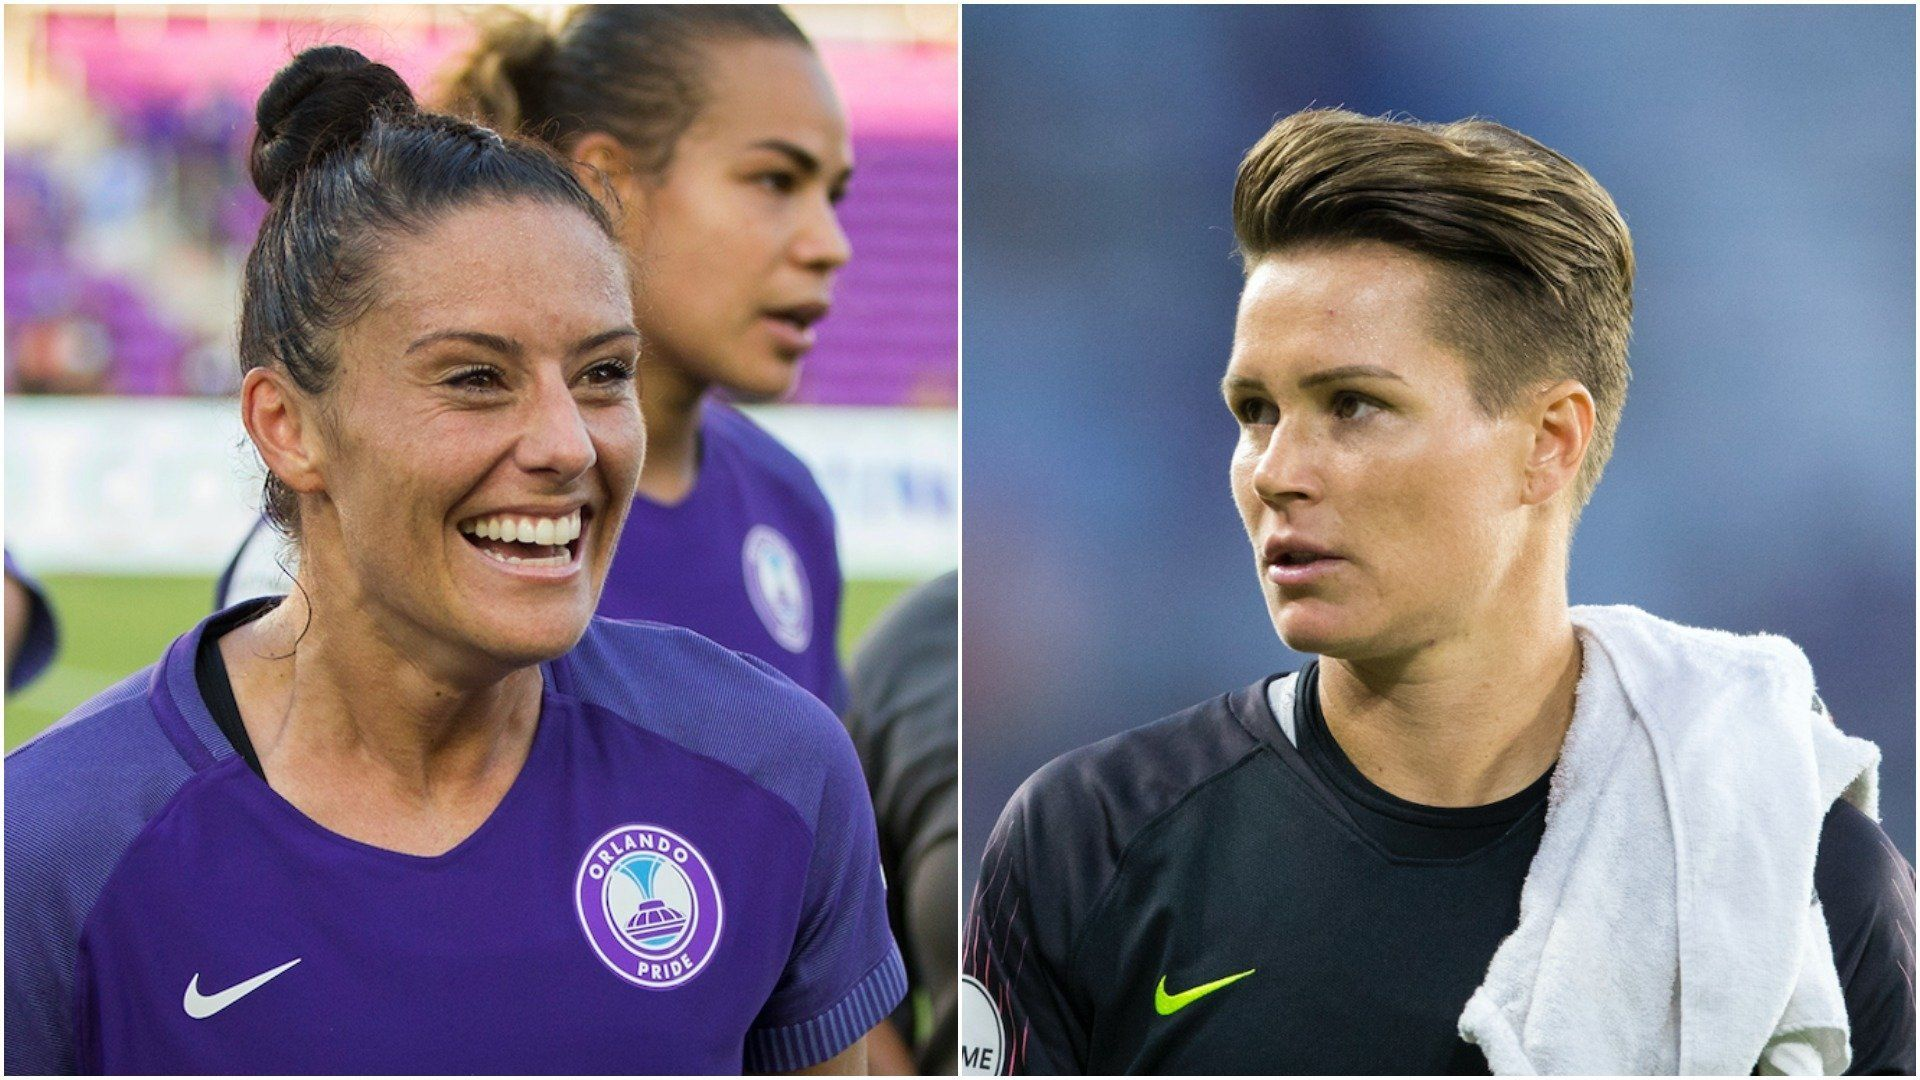 Soccer Stars Ali Krieger And Ashlyn Harris Are Engaged